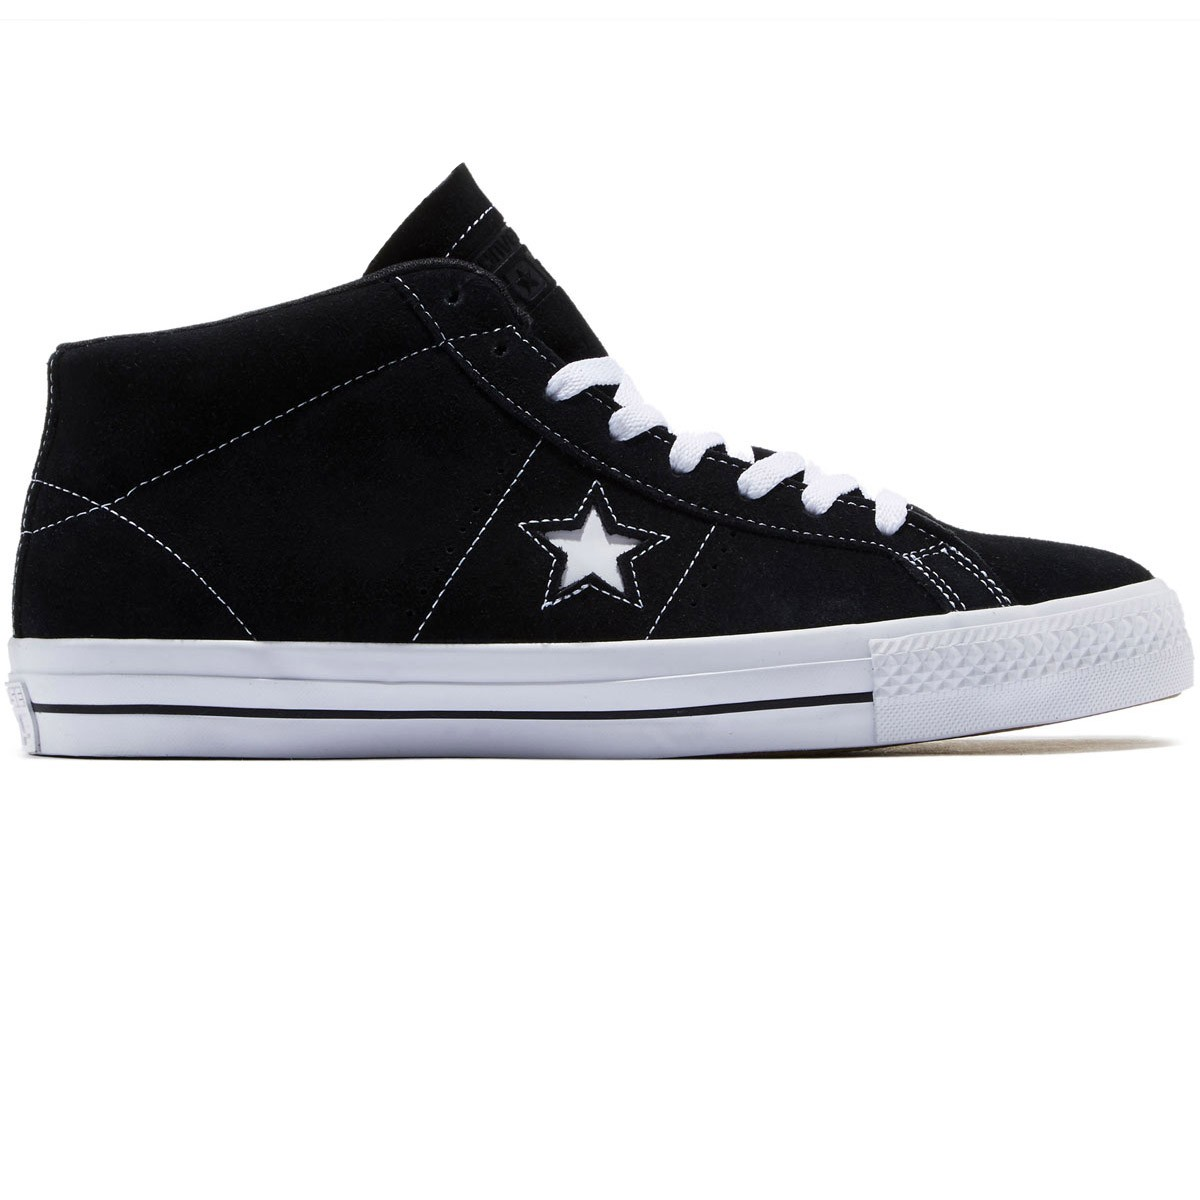 caeedfb110fab8 Converse One Star Pro Shoes - Nightime Navy Pink Freeze White - 10